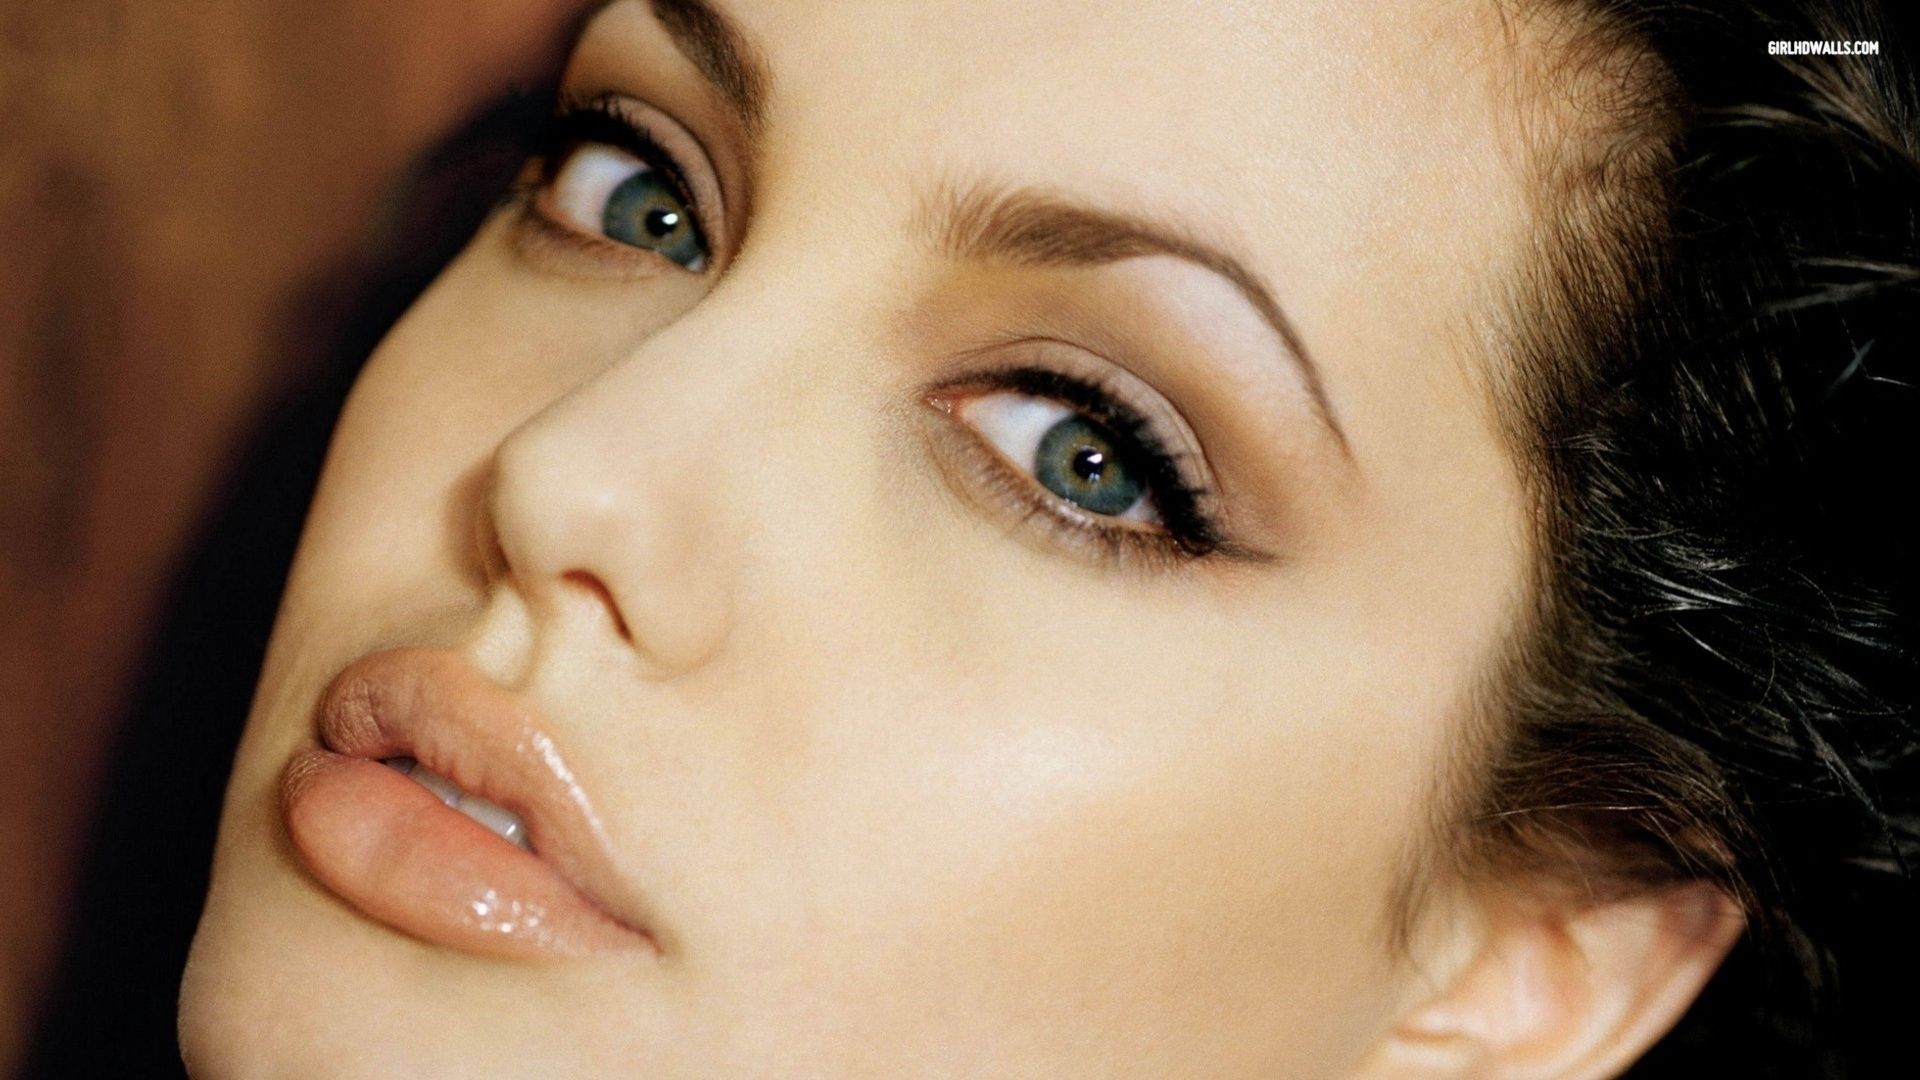 http-www-epic-net-Angelina-Jolie-Hd-1920x1080-1920x1080-jp-wallpaper-wpc9006274